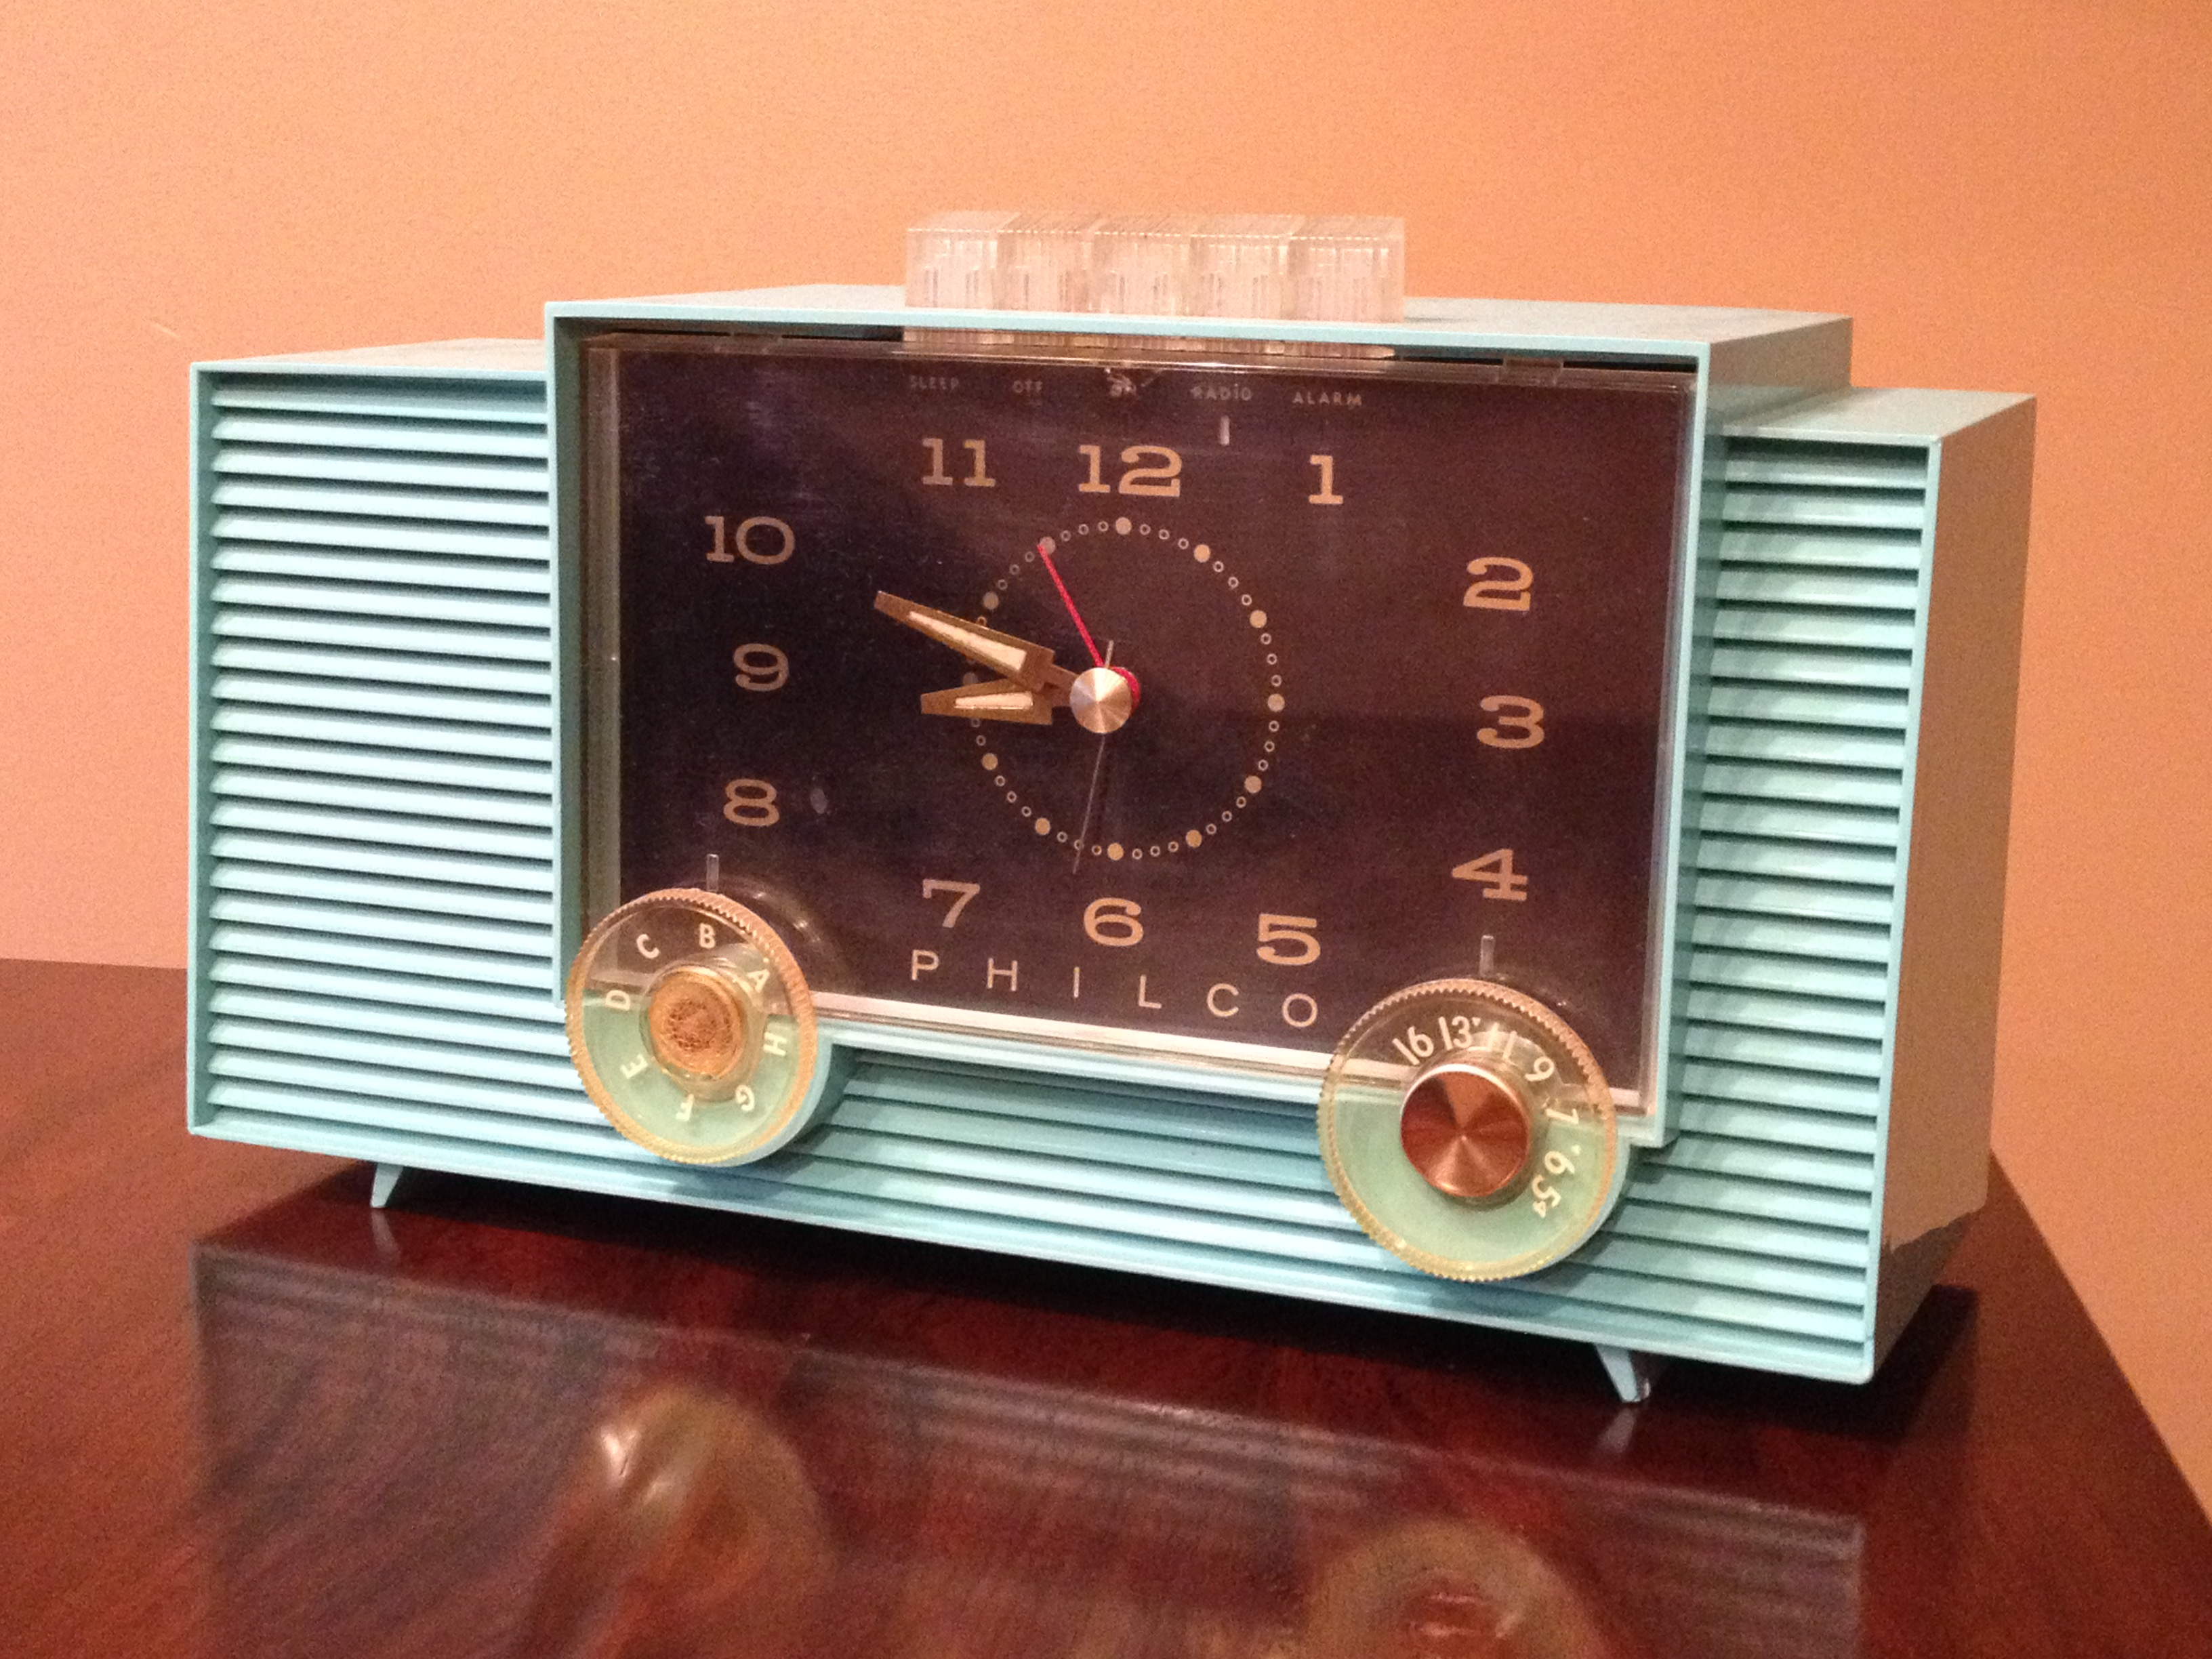 These radio's are from the KPR radio museum, curated by KPR News Director J. Schafer.